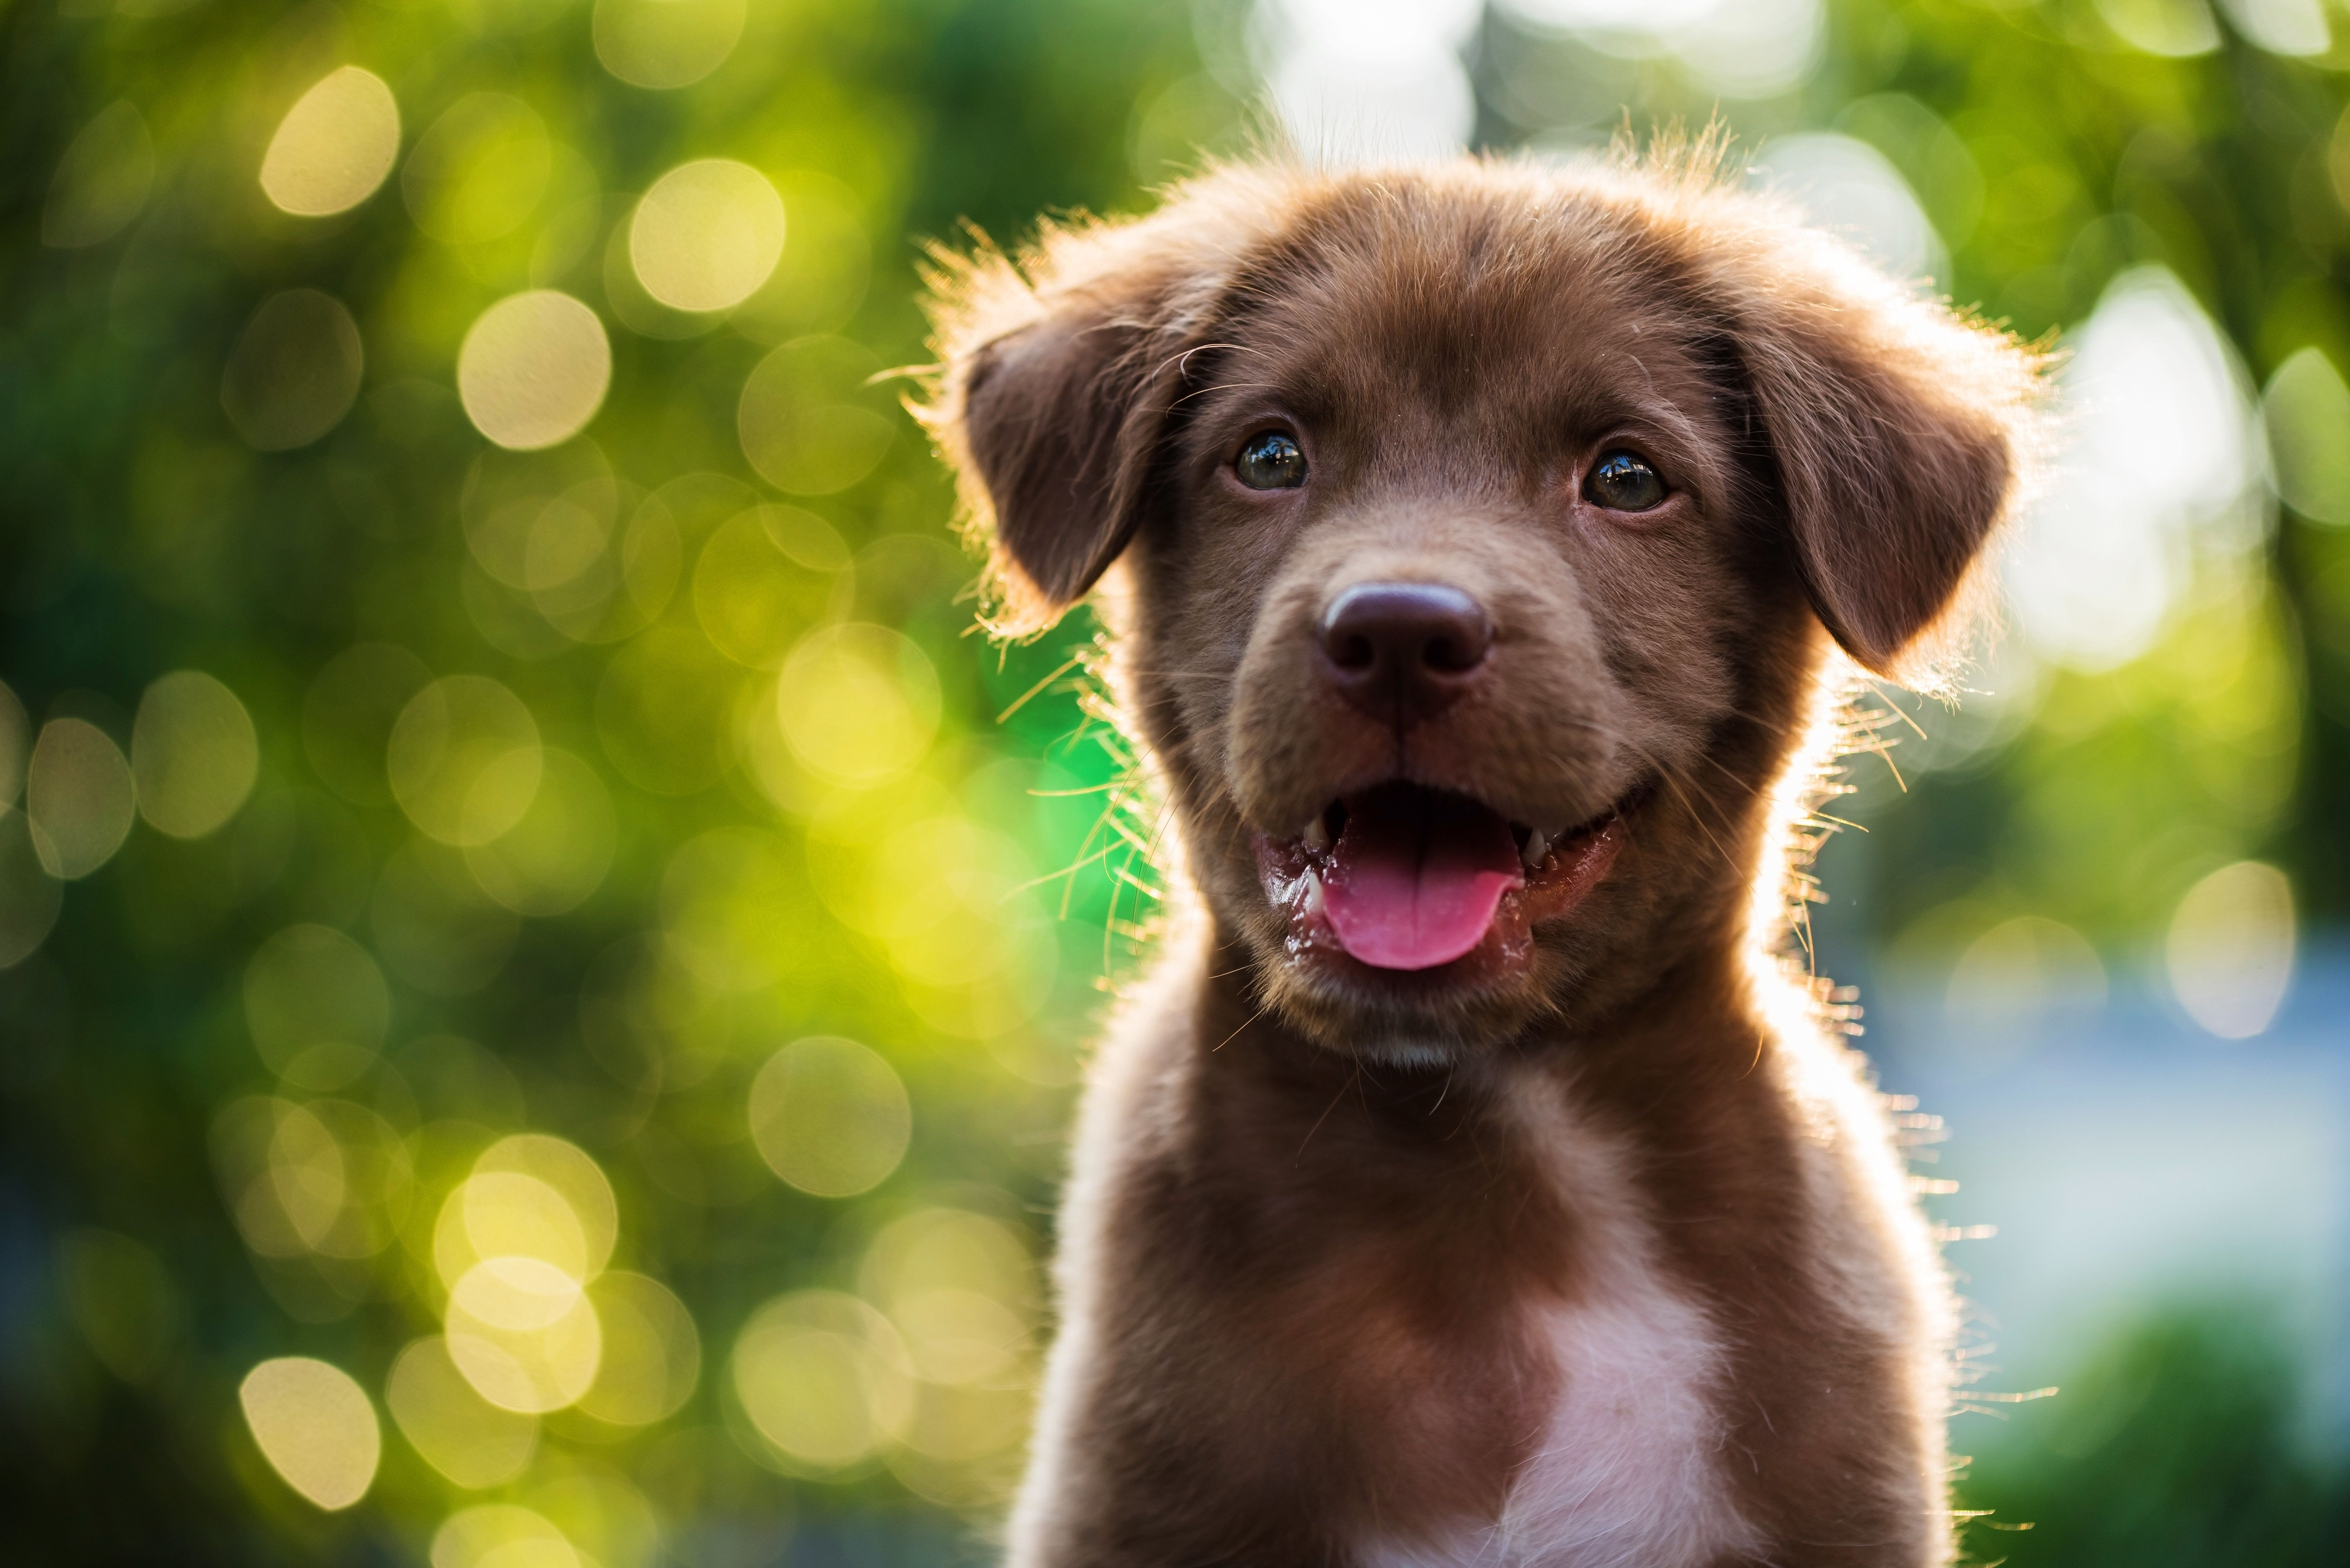 People Are Sharing Adorable Photos Of Furry Friends For National Pet